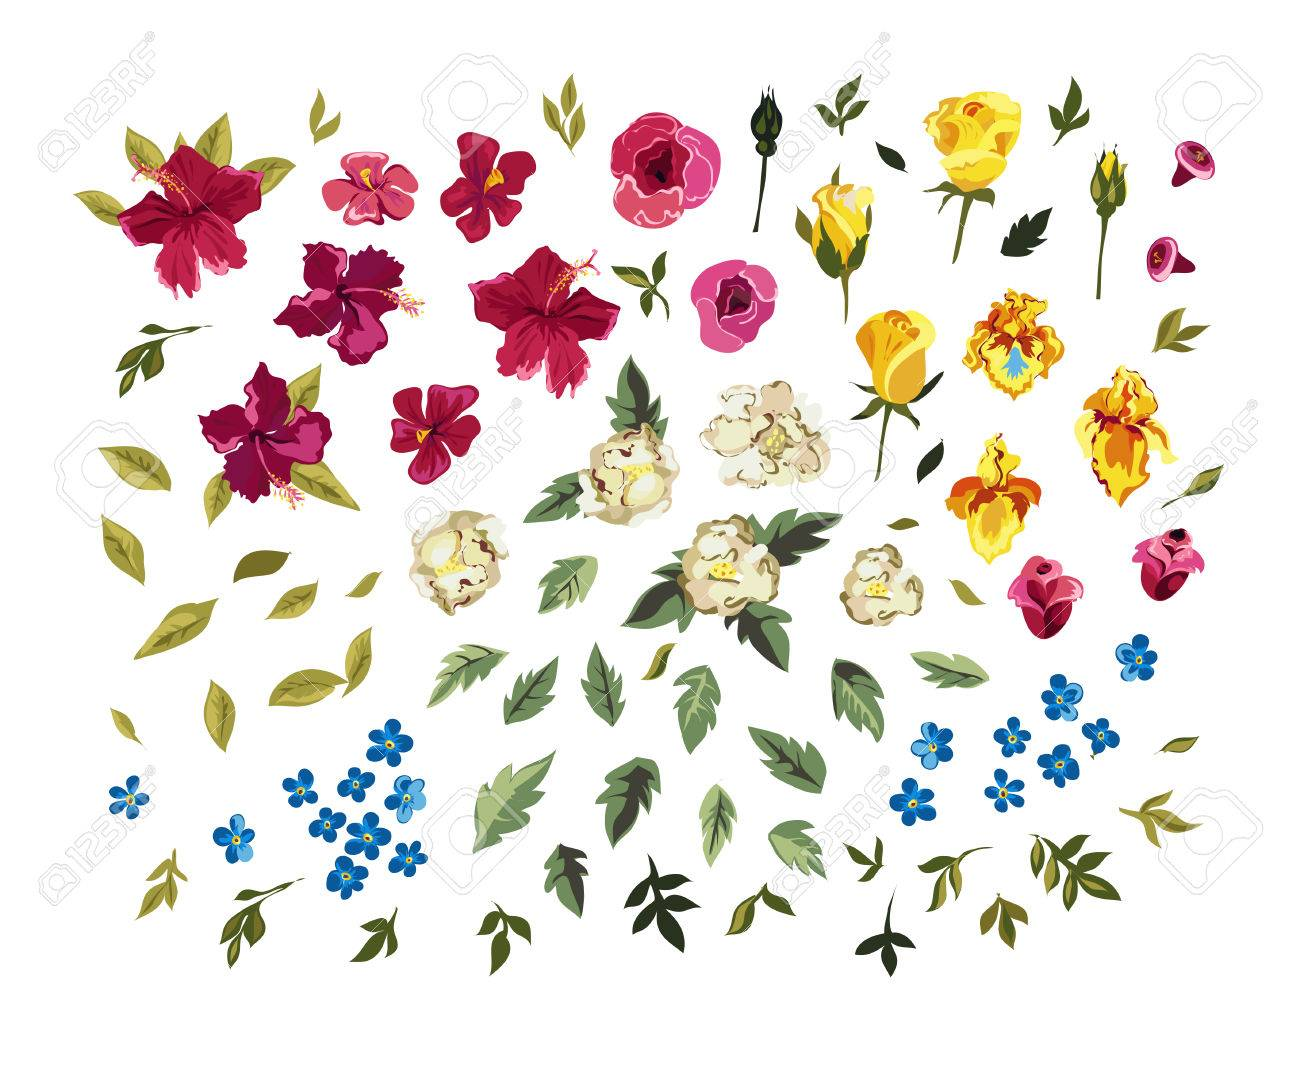 245,191 Petals Stock Illustrations, Cliparts And Royalty Free ...